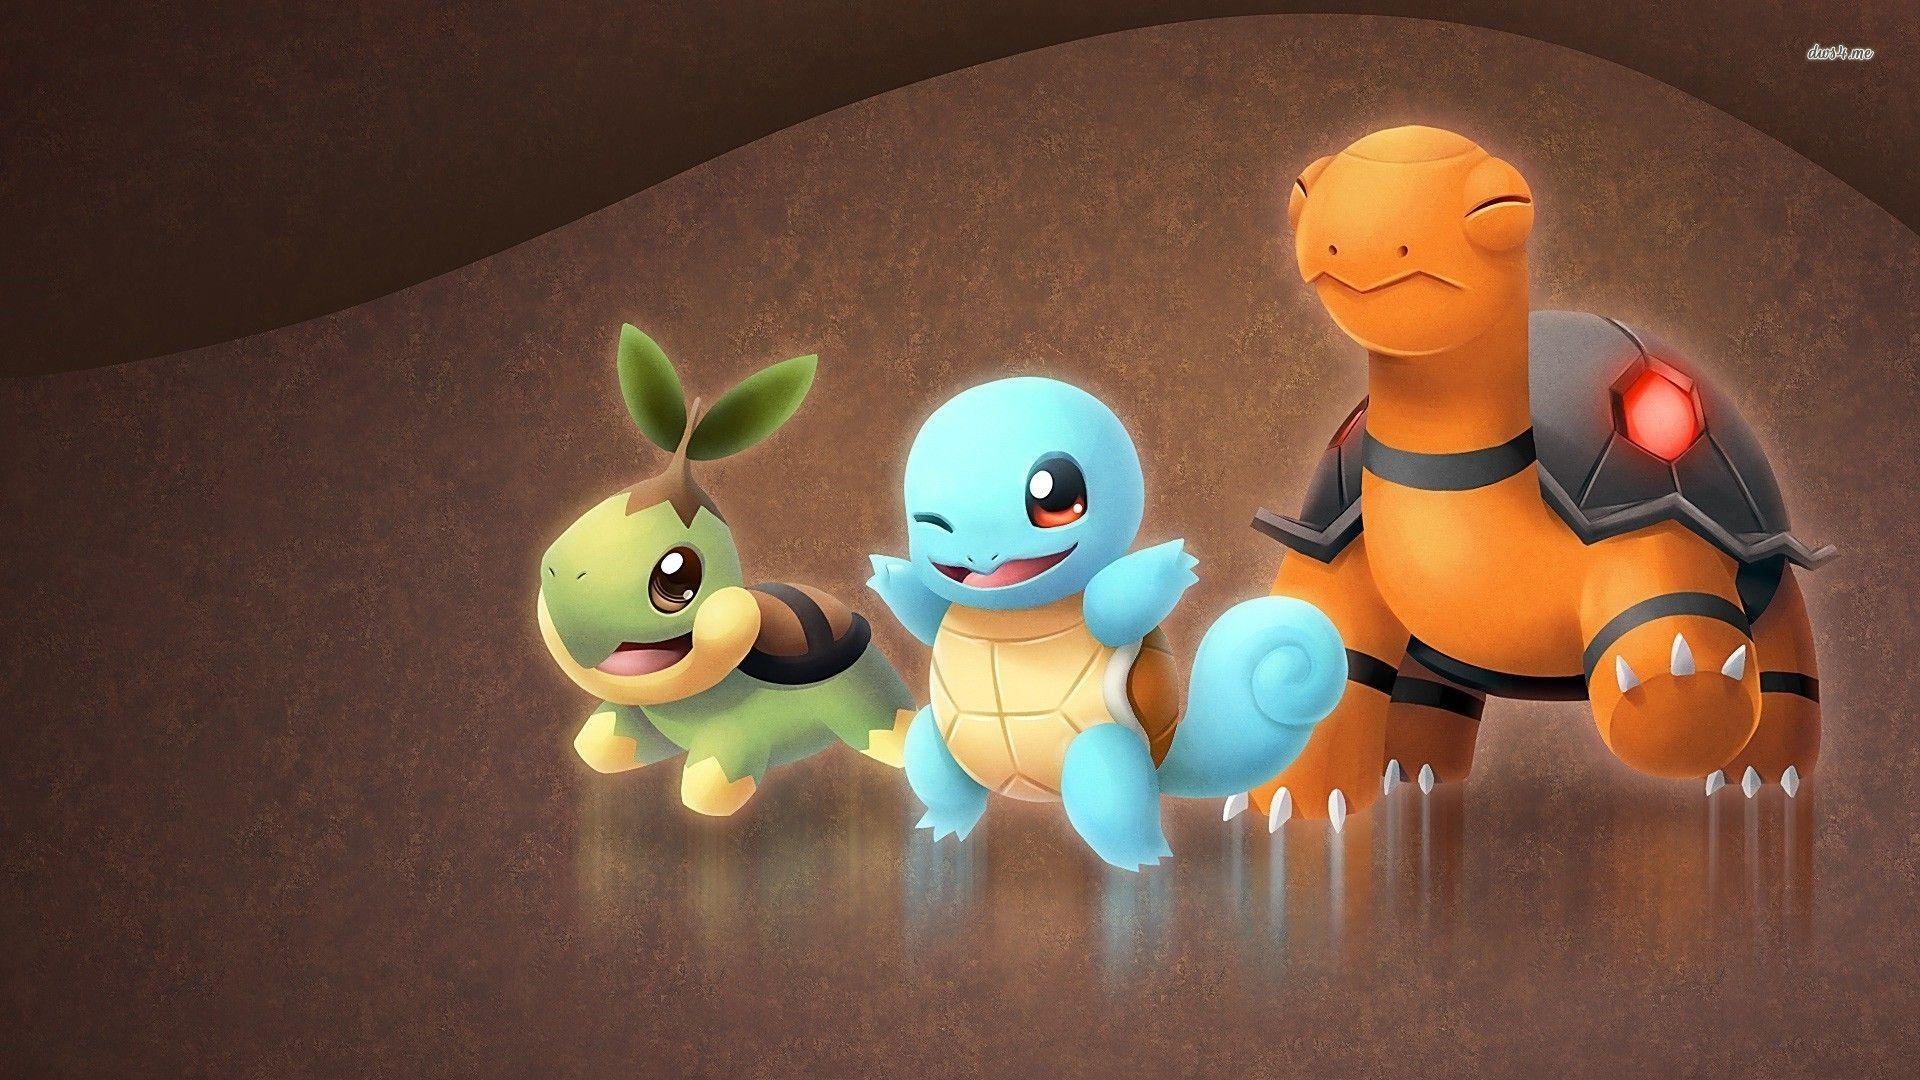 Torkoal, Squirtle, Turtwig - Pokemon wallpaper - Anime wallpapers ...